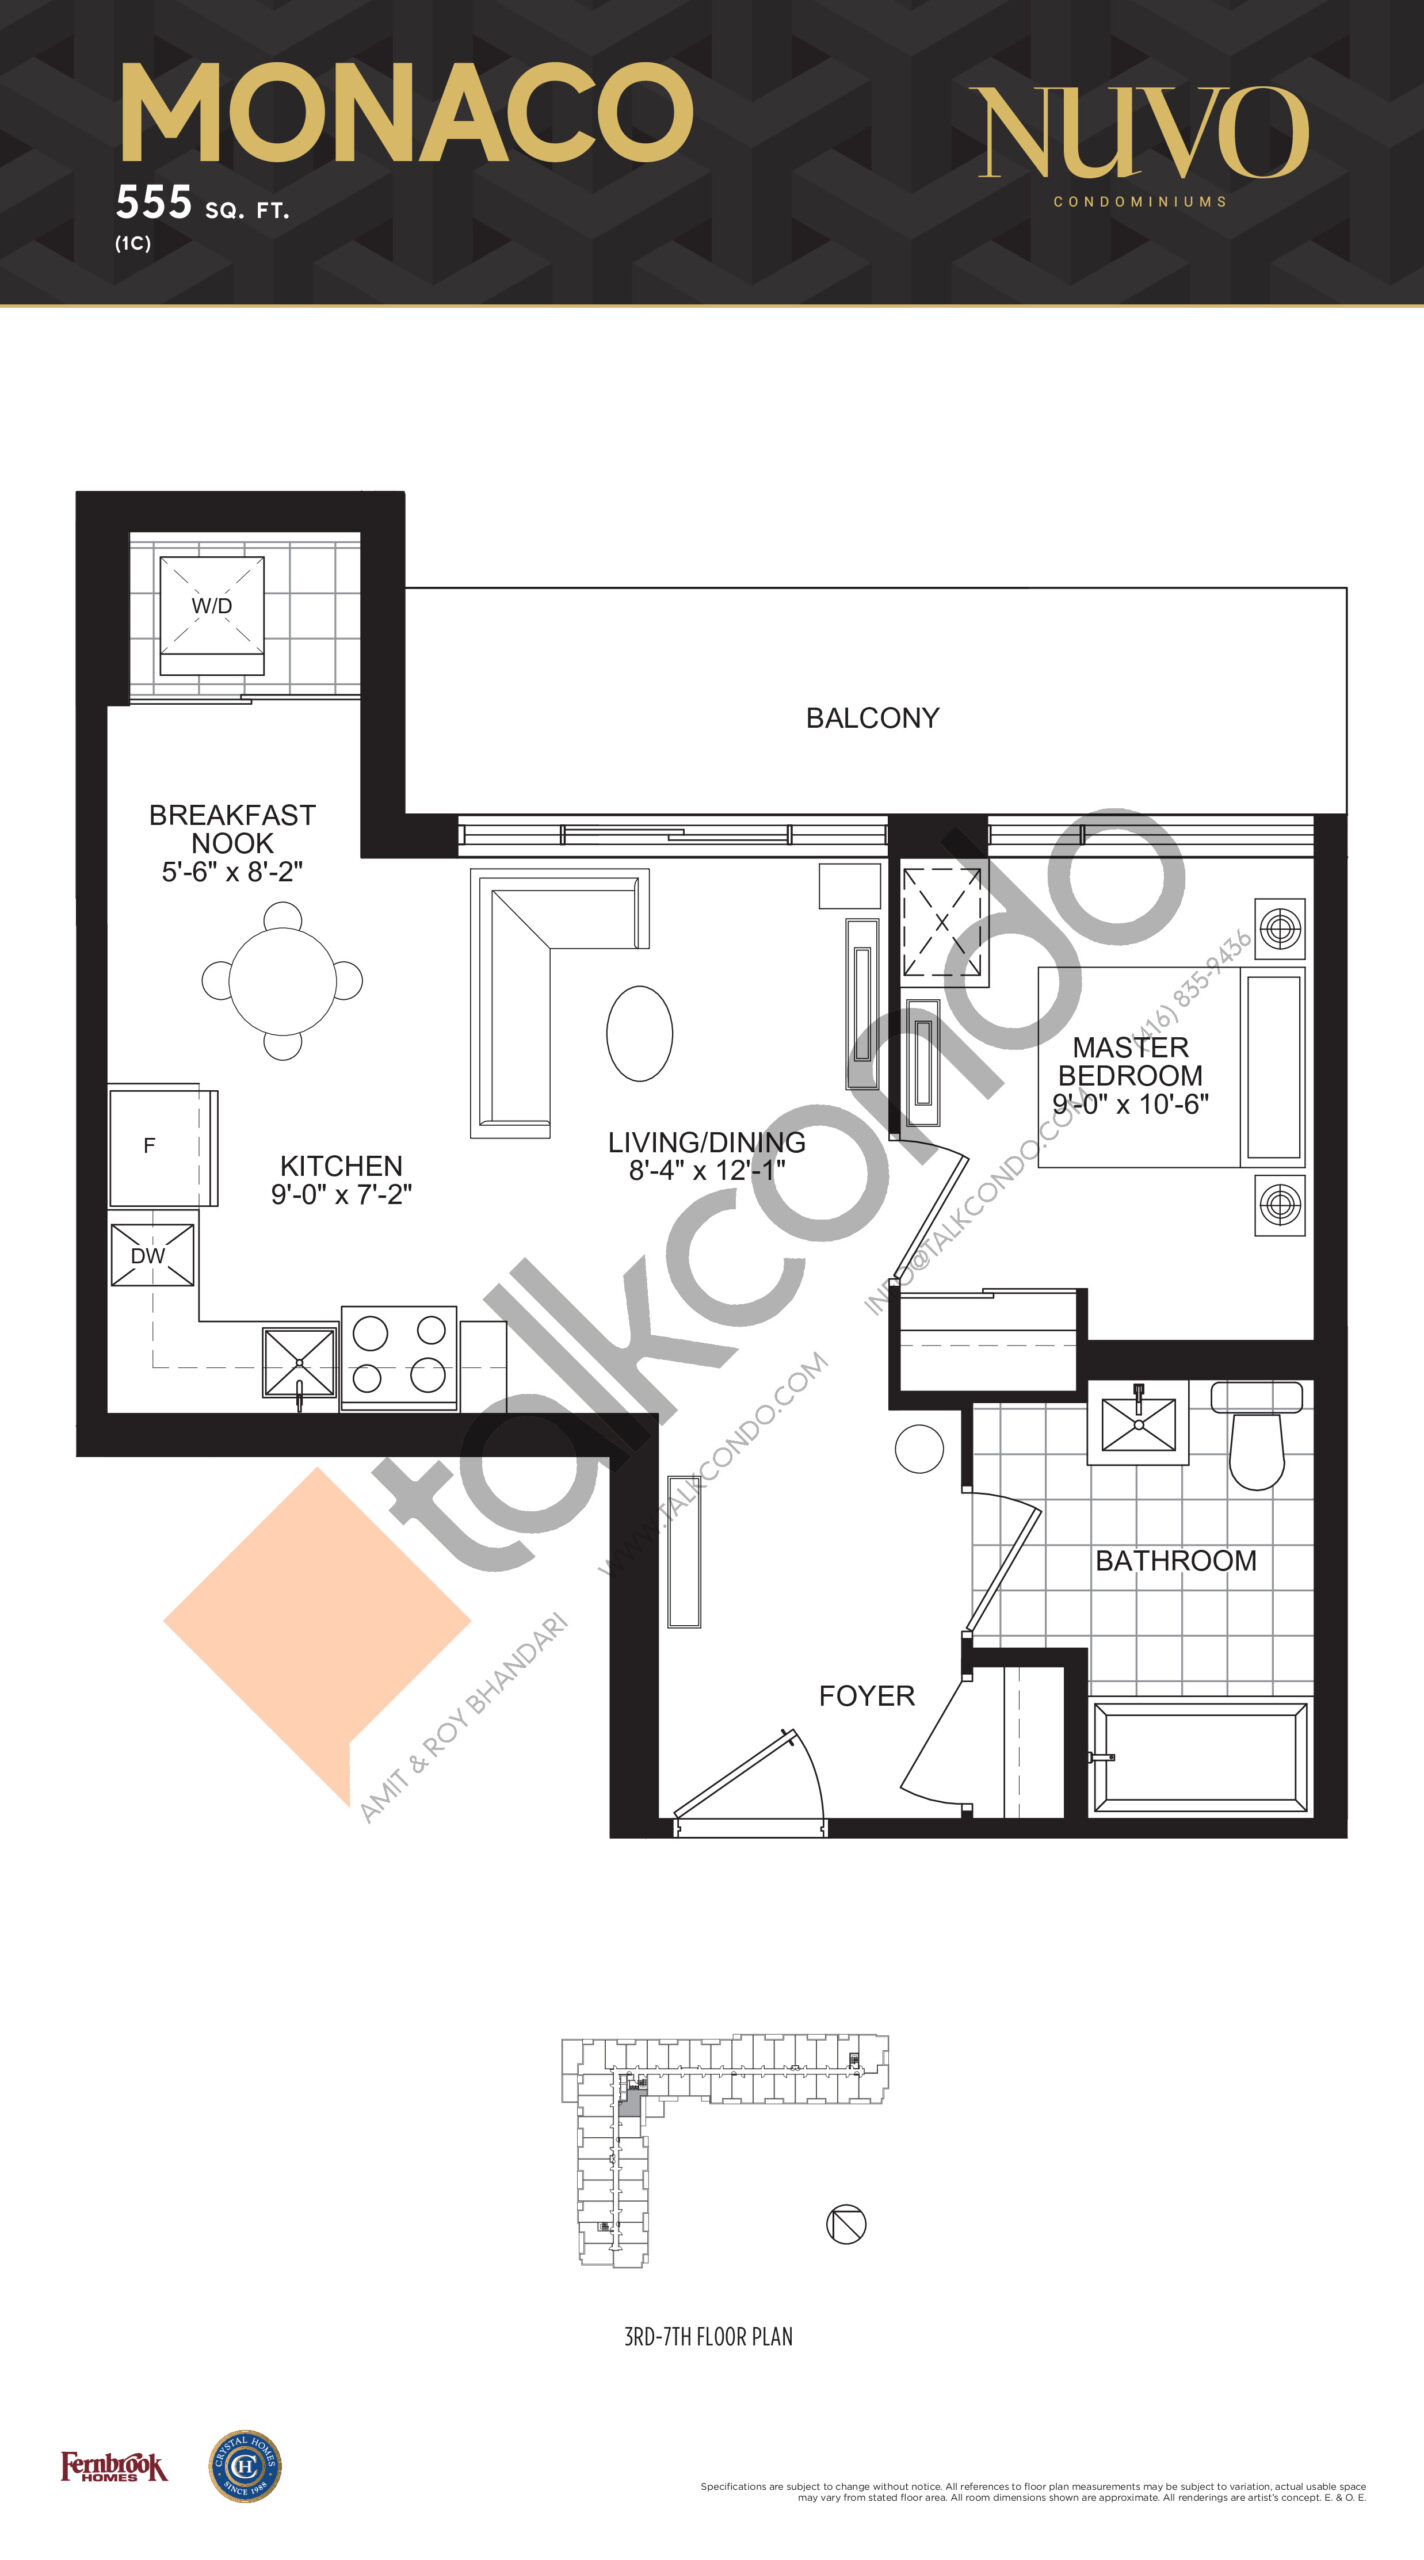 Monaco Floor Plan at Nuvo Condos - 555 sq.ft